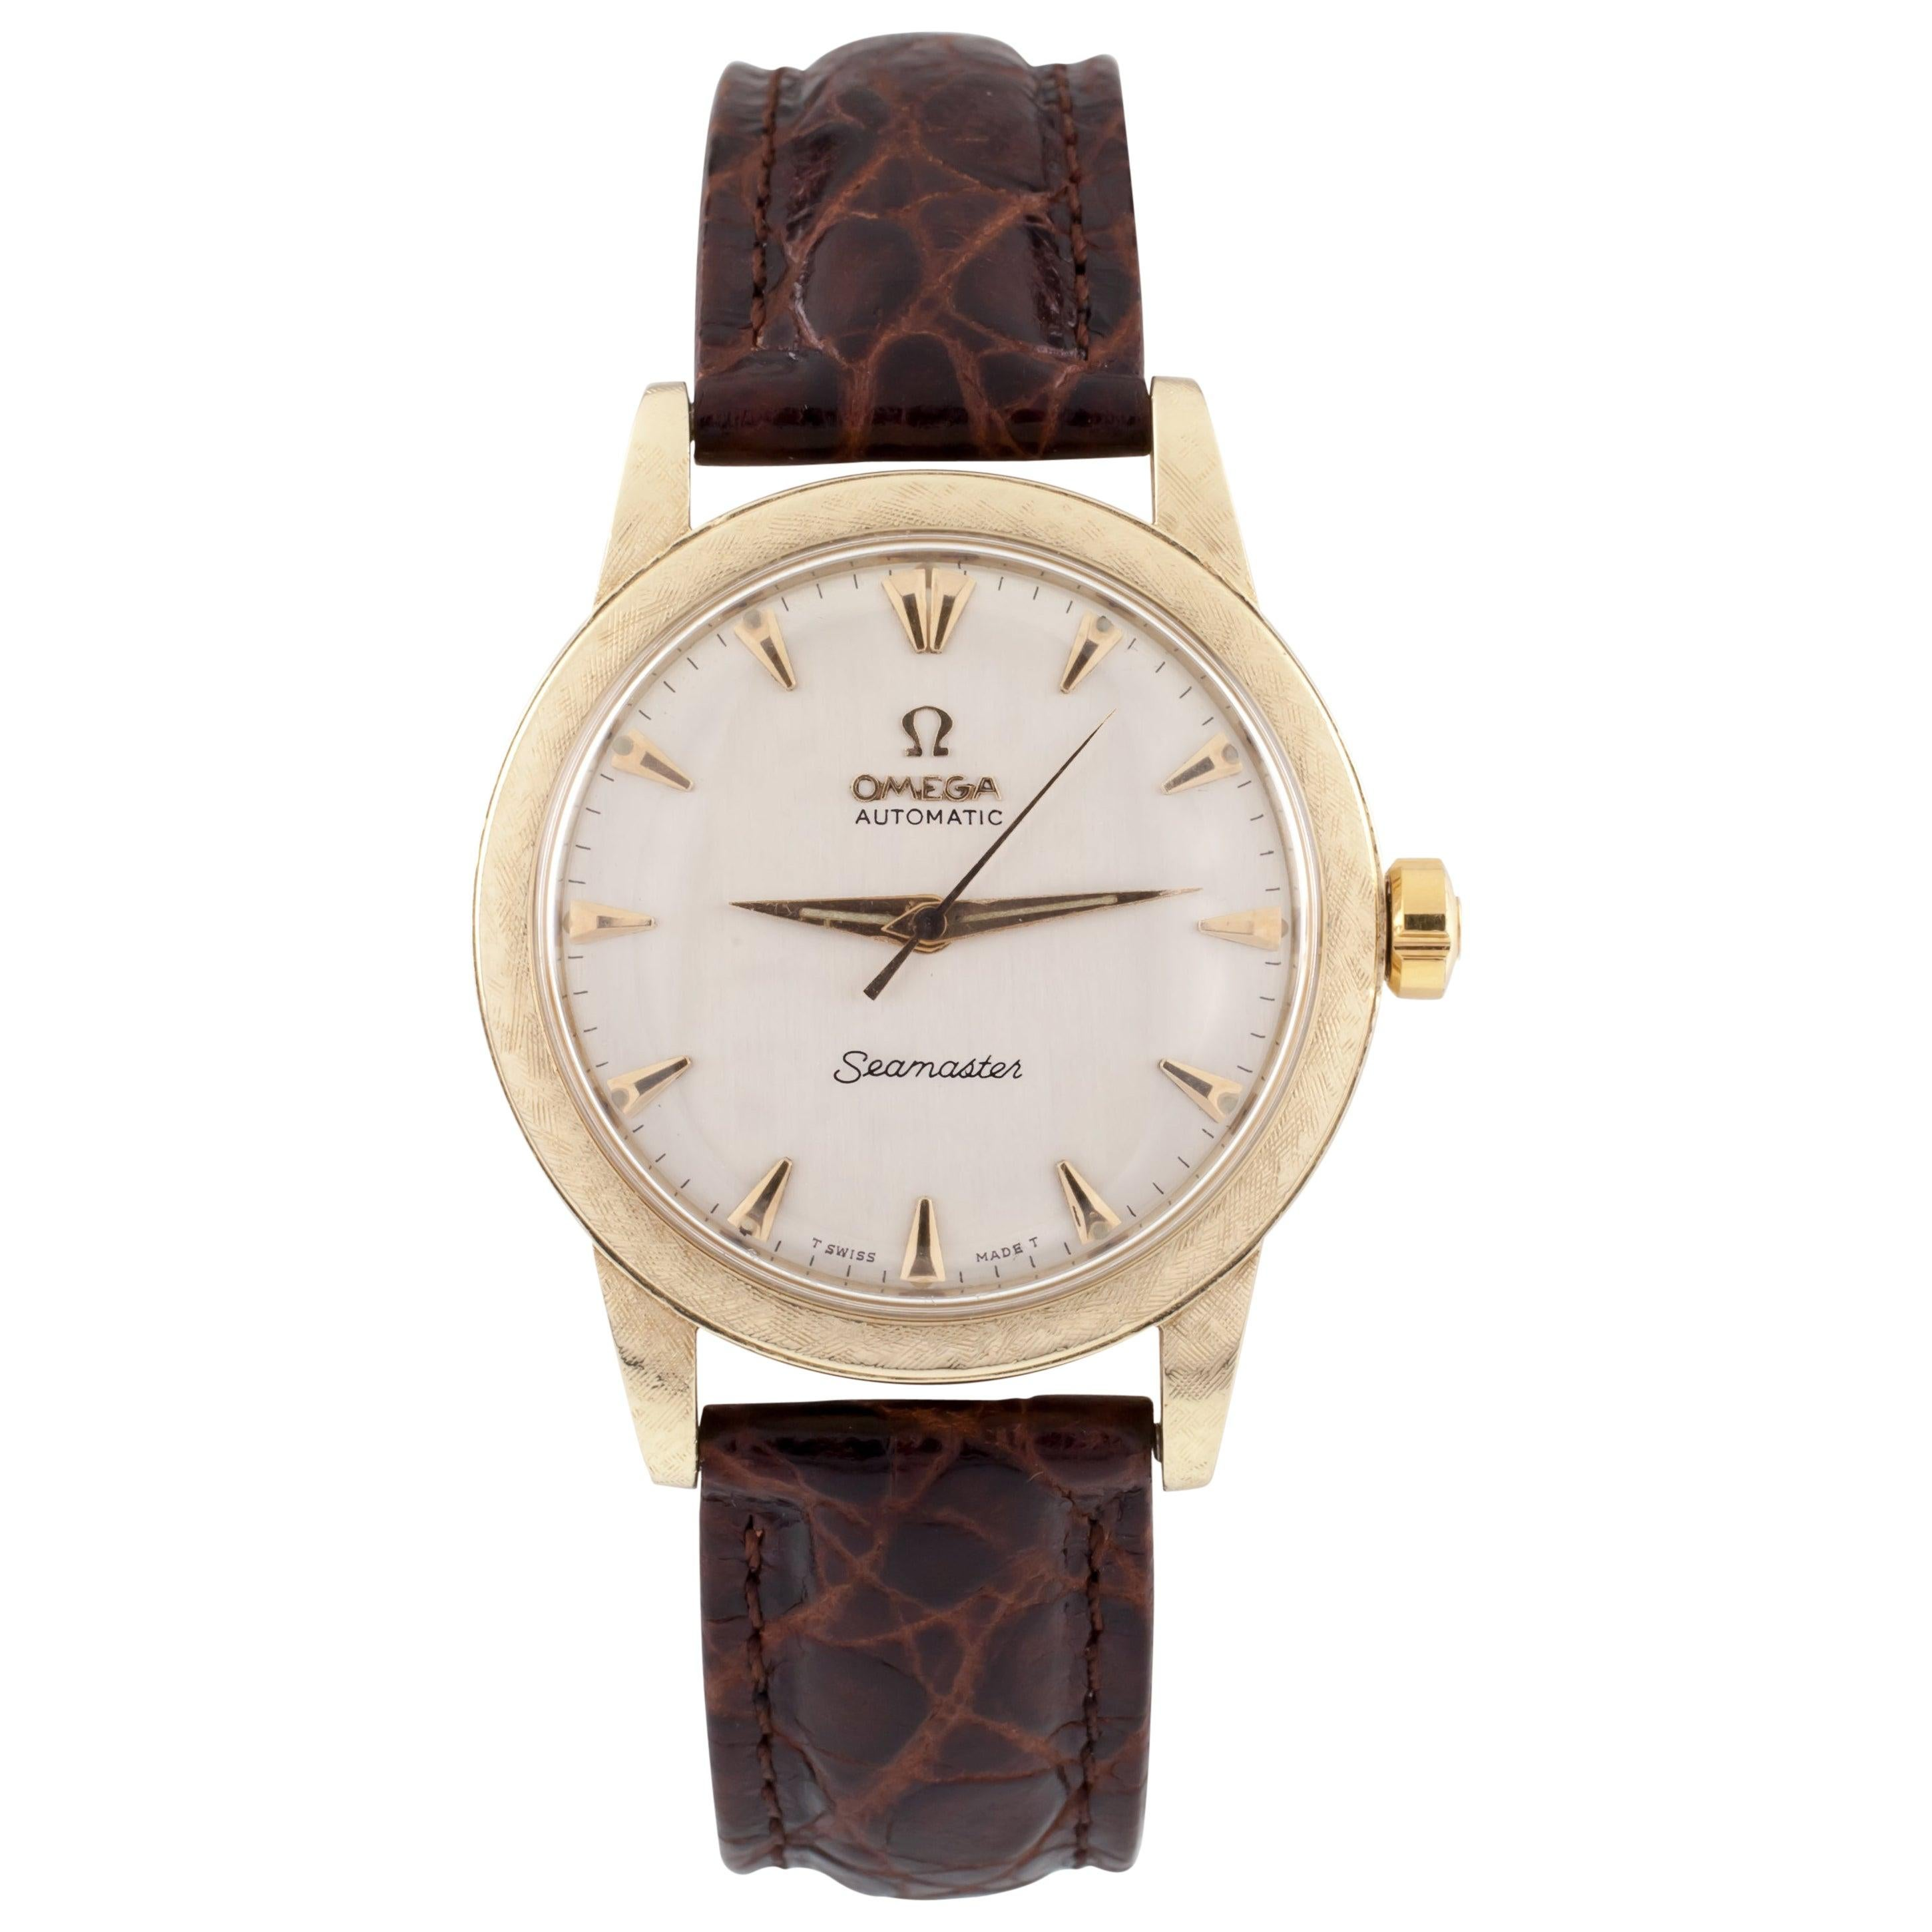 Omega Yellow Gold Automatic Seamaster Men's Watch with Leather Band